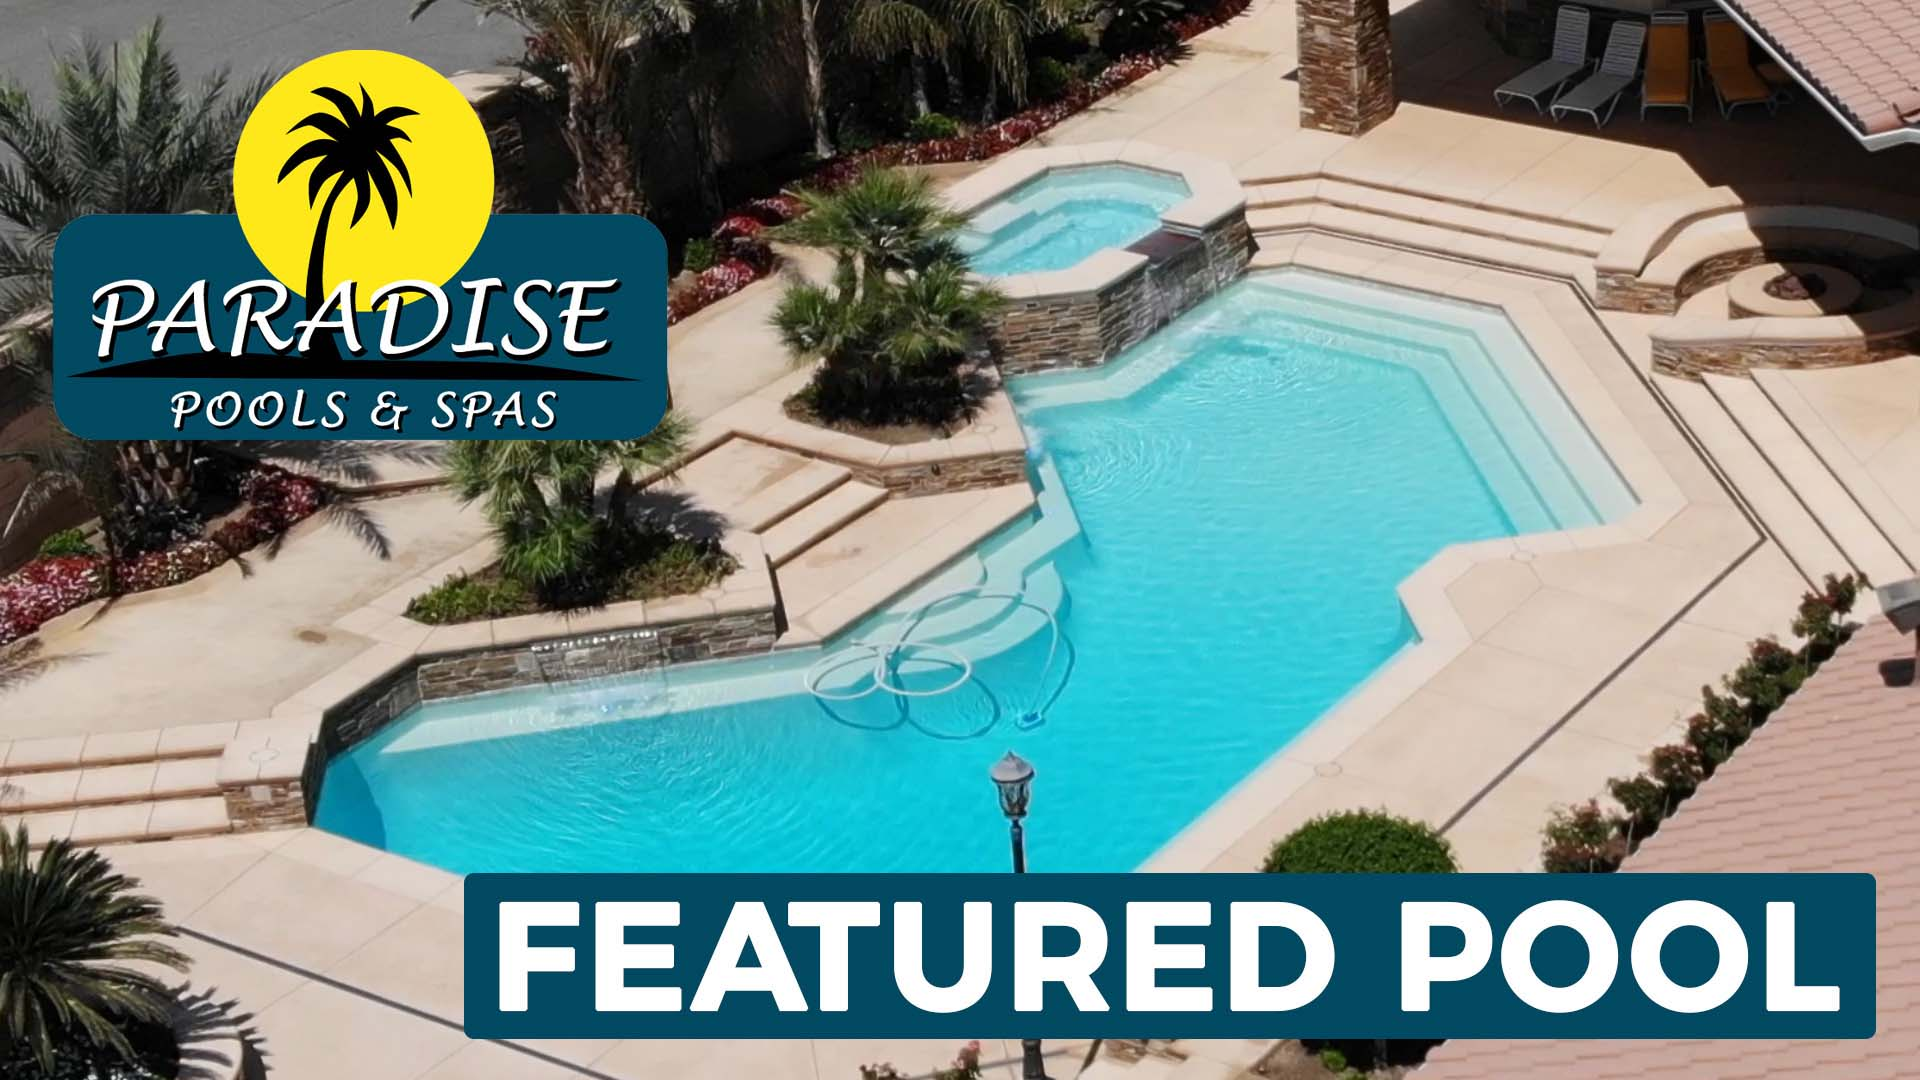 Perfect Private Oasis - Featured Pool aerial shot of Paradise Pools & Spas of Bakersfield..